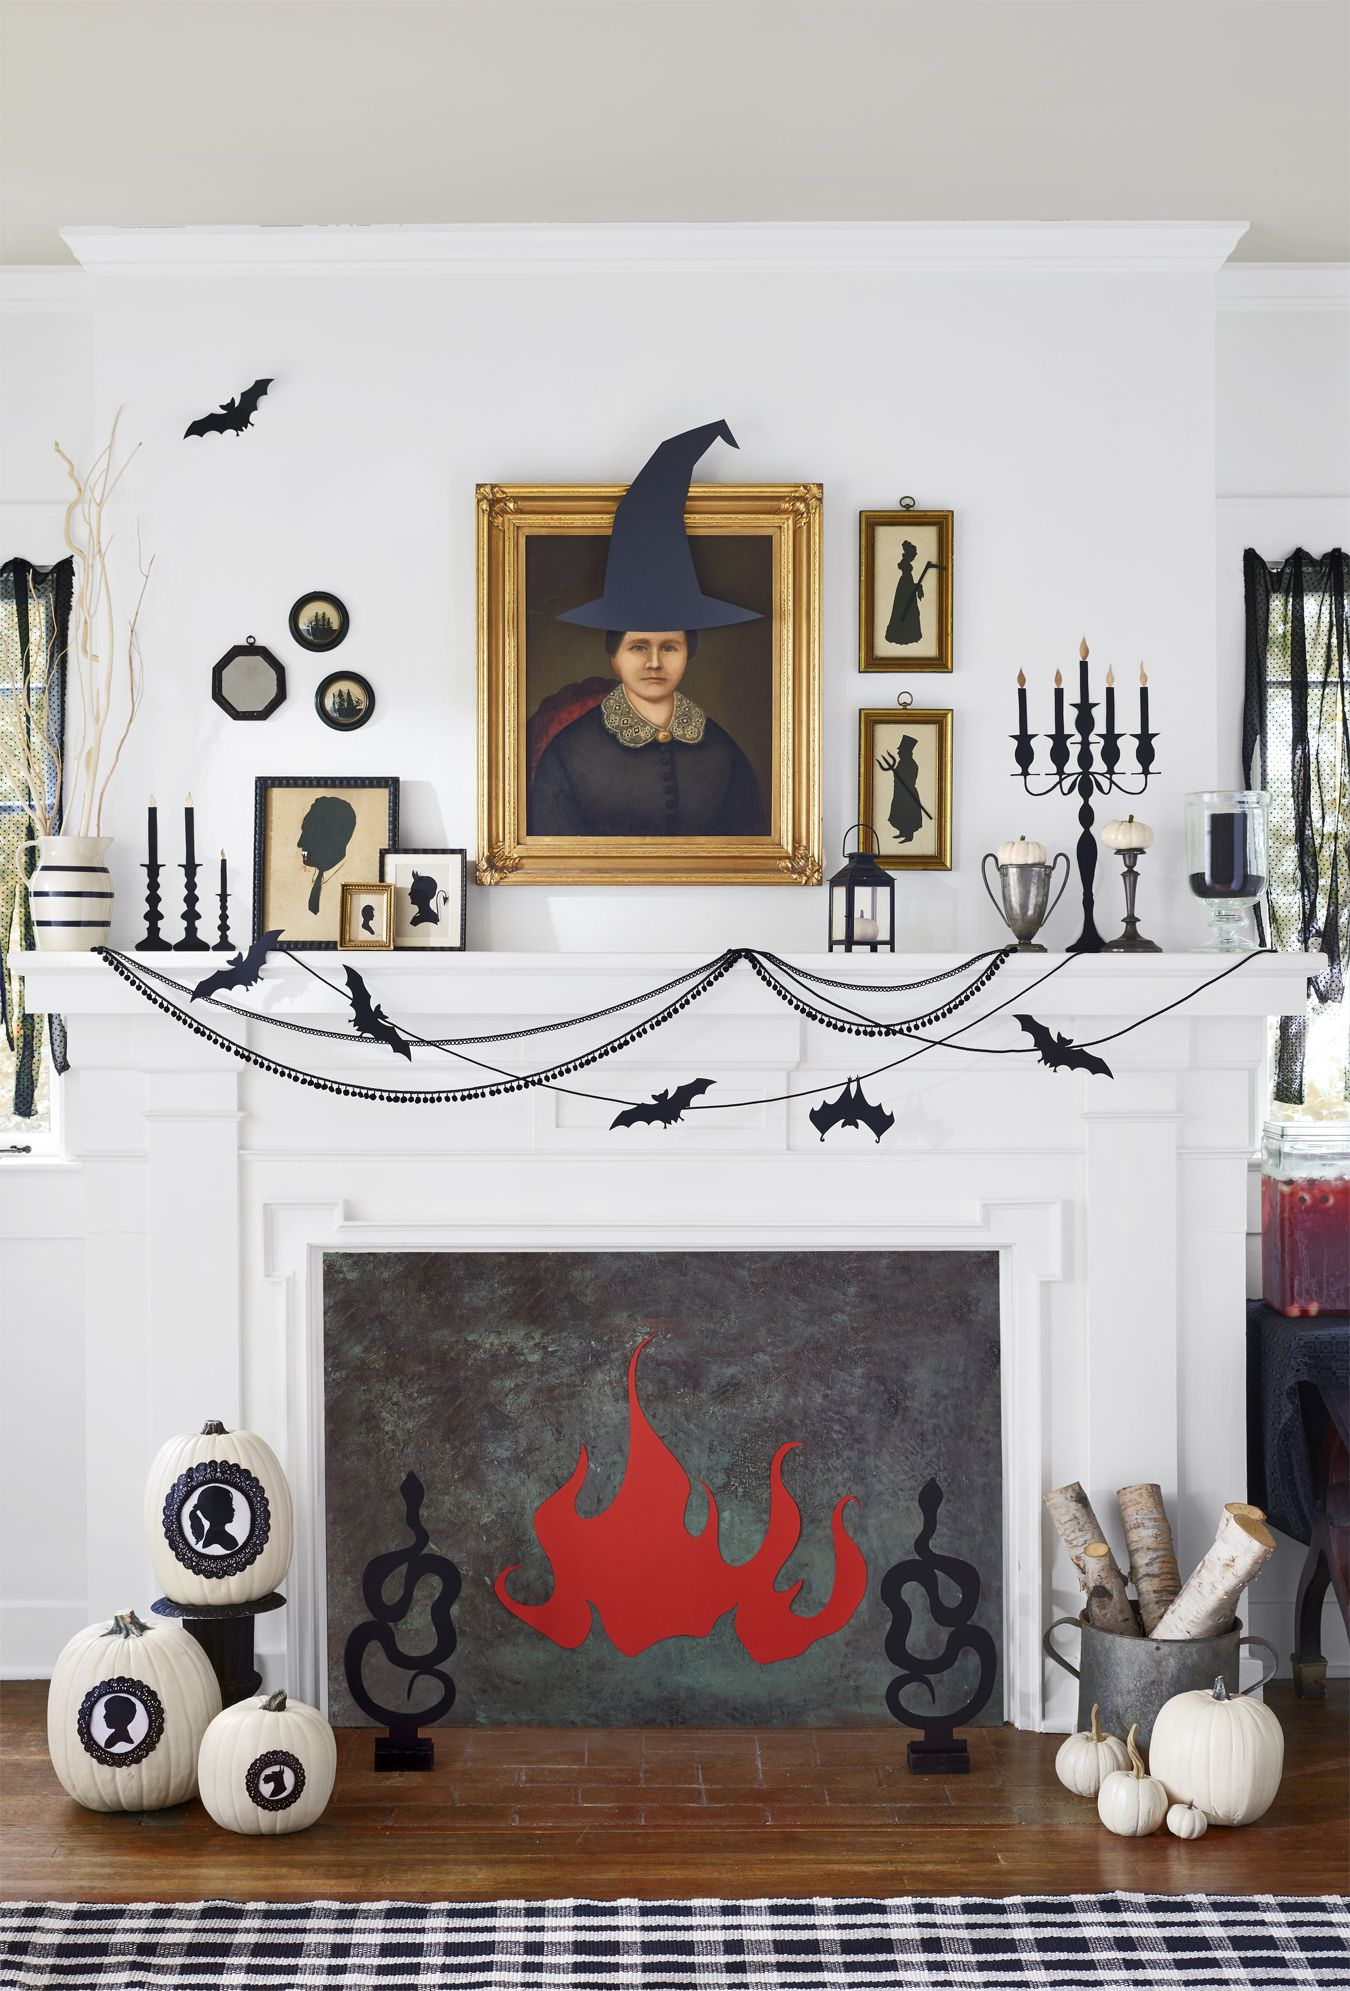 56 Fun Halloween Party Decorating Ideas - Spooky Halloween Party Decor